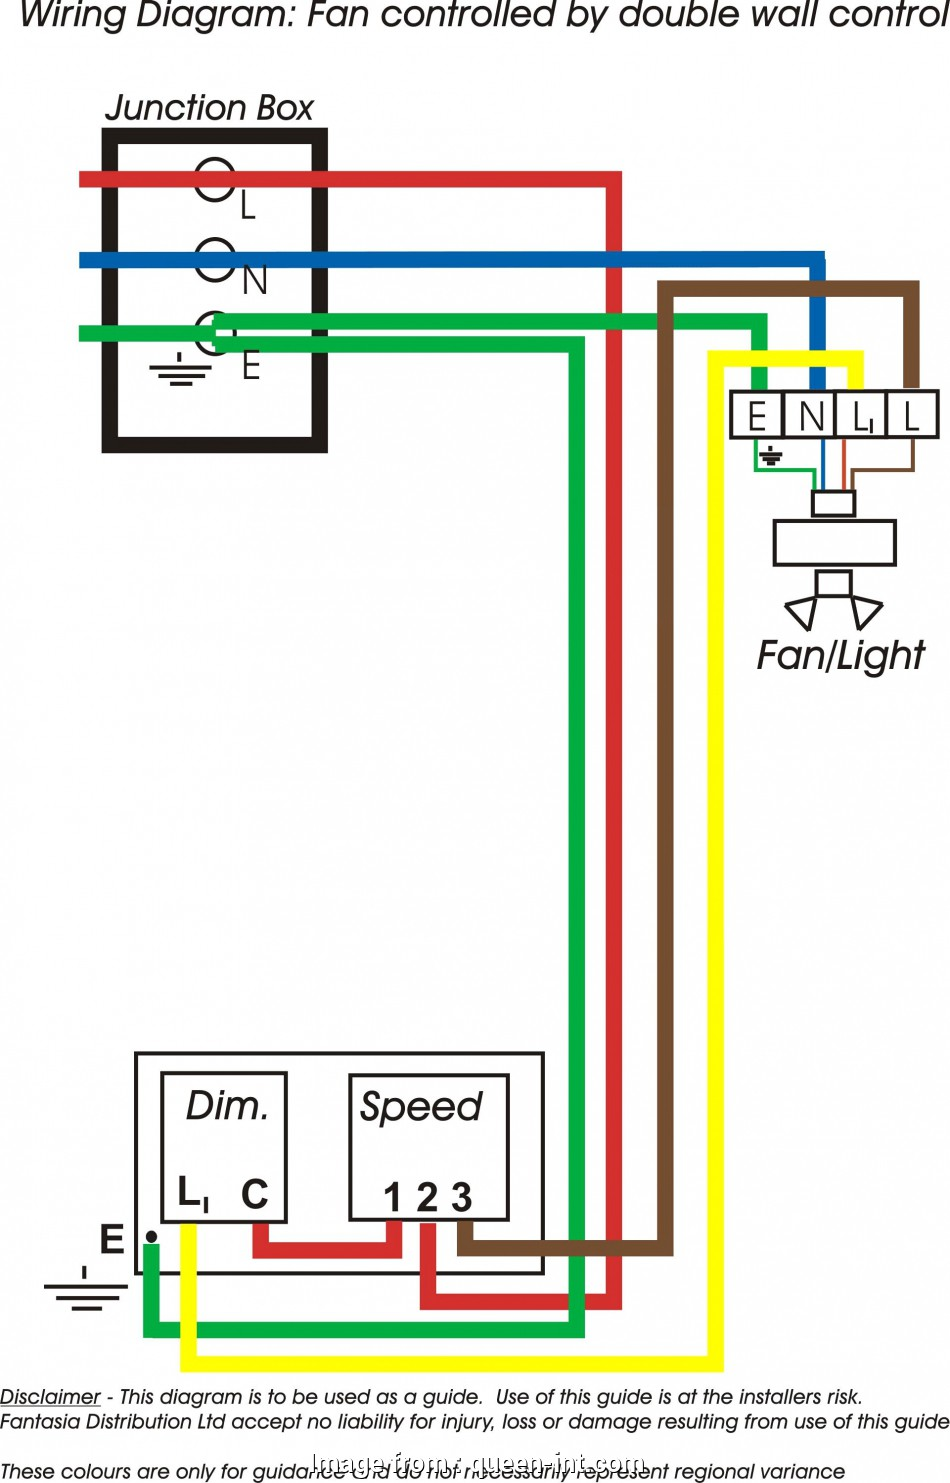 3 way switch only 3 wires Hunter, Wiring Diagram Inspirational Wiring Diagram, Lighting Junction, New Wire 3, Switch 11 Fantastic 3, Switch Only 3 Wires Ideas